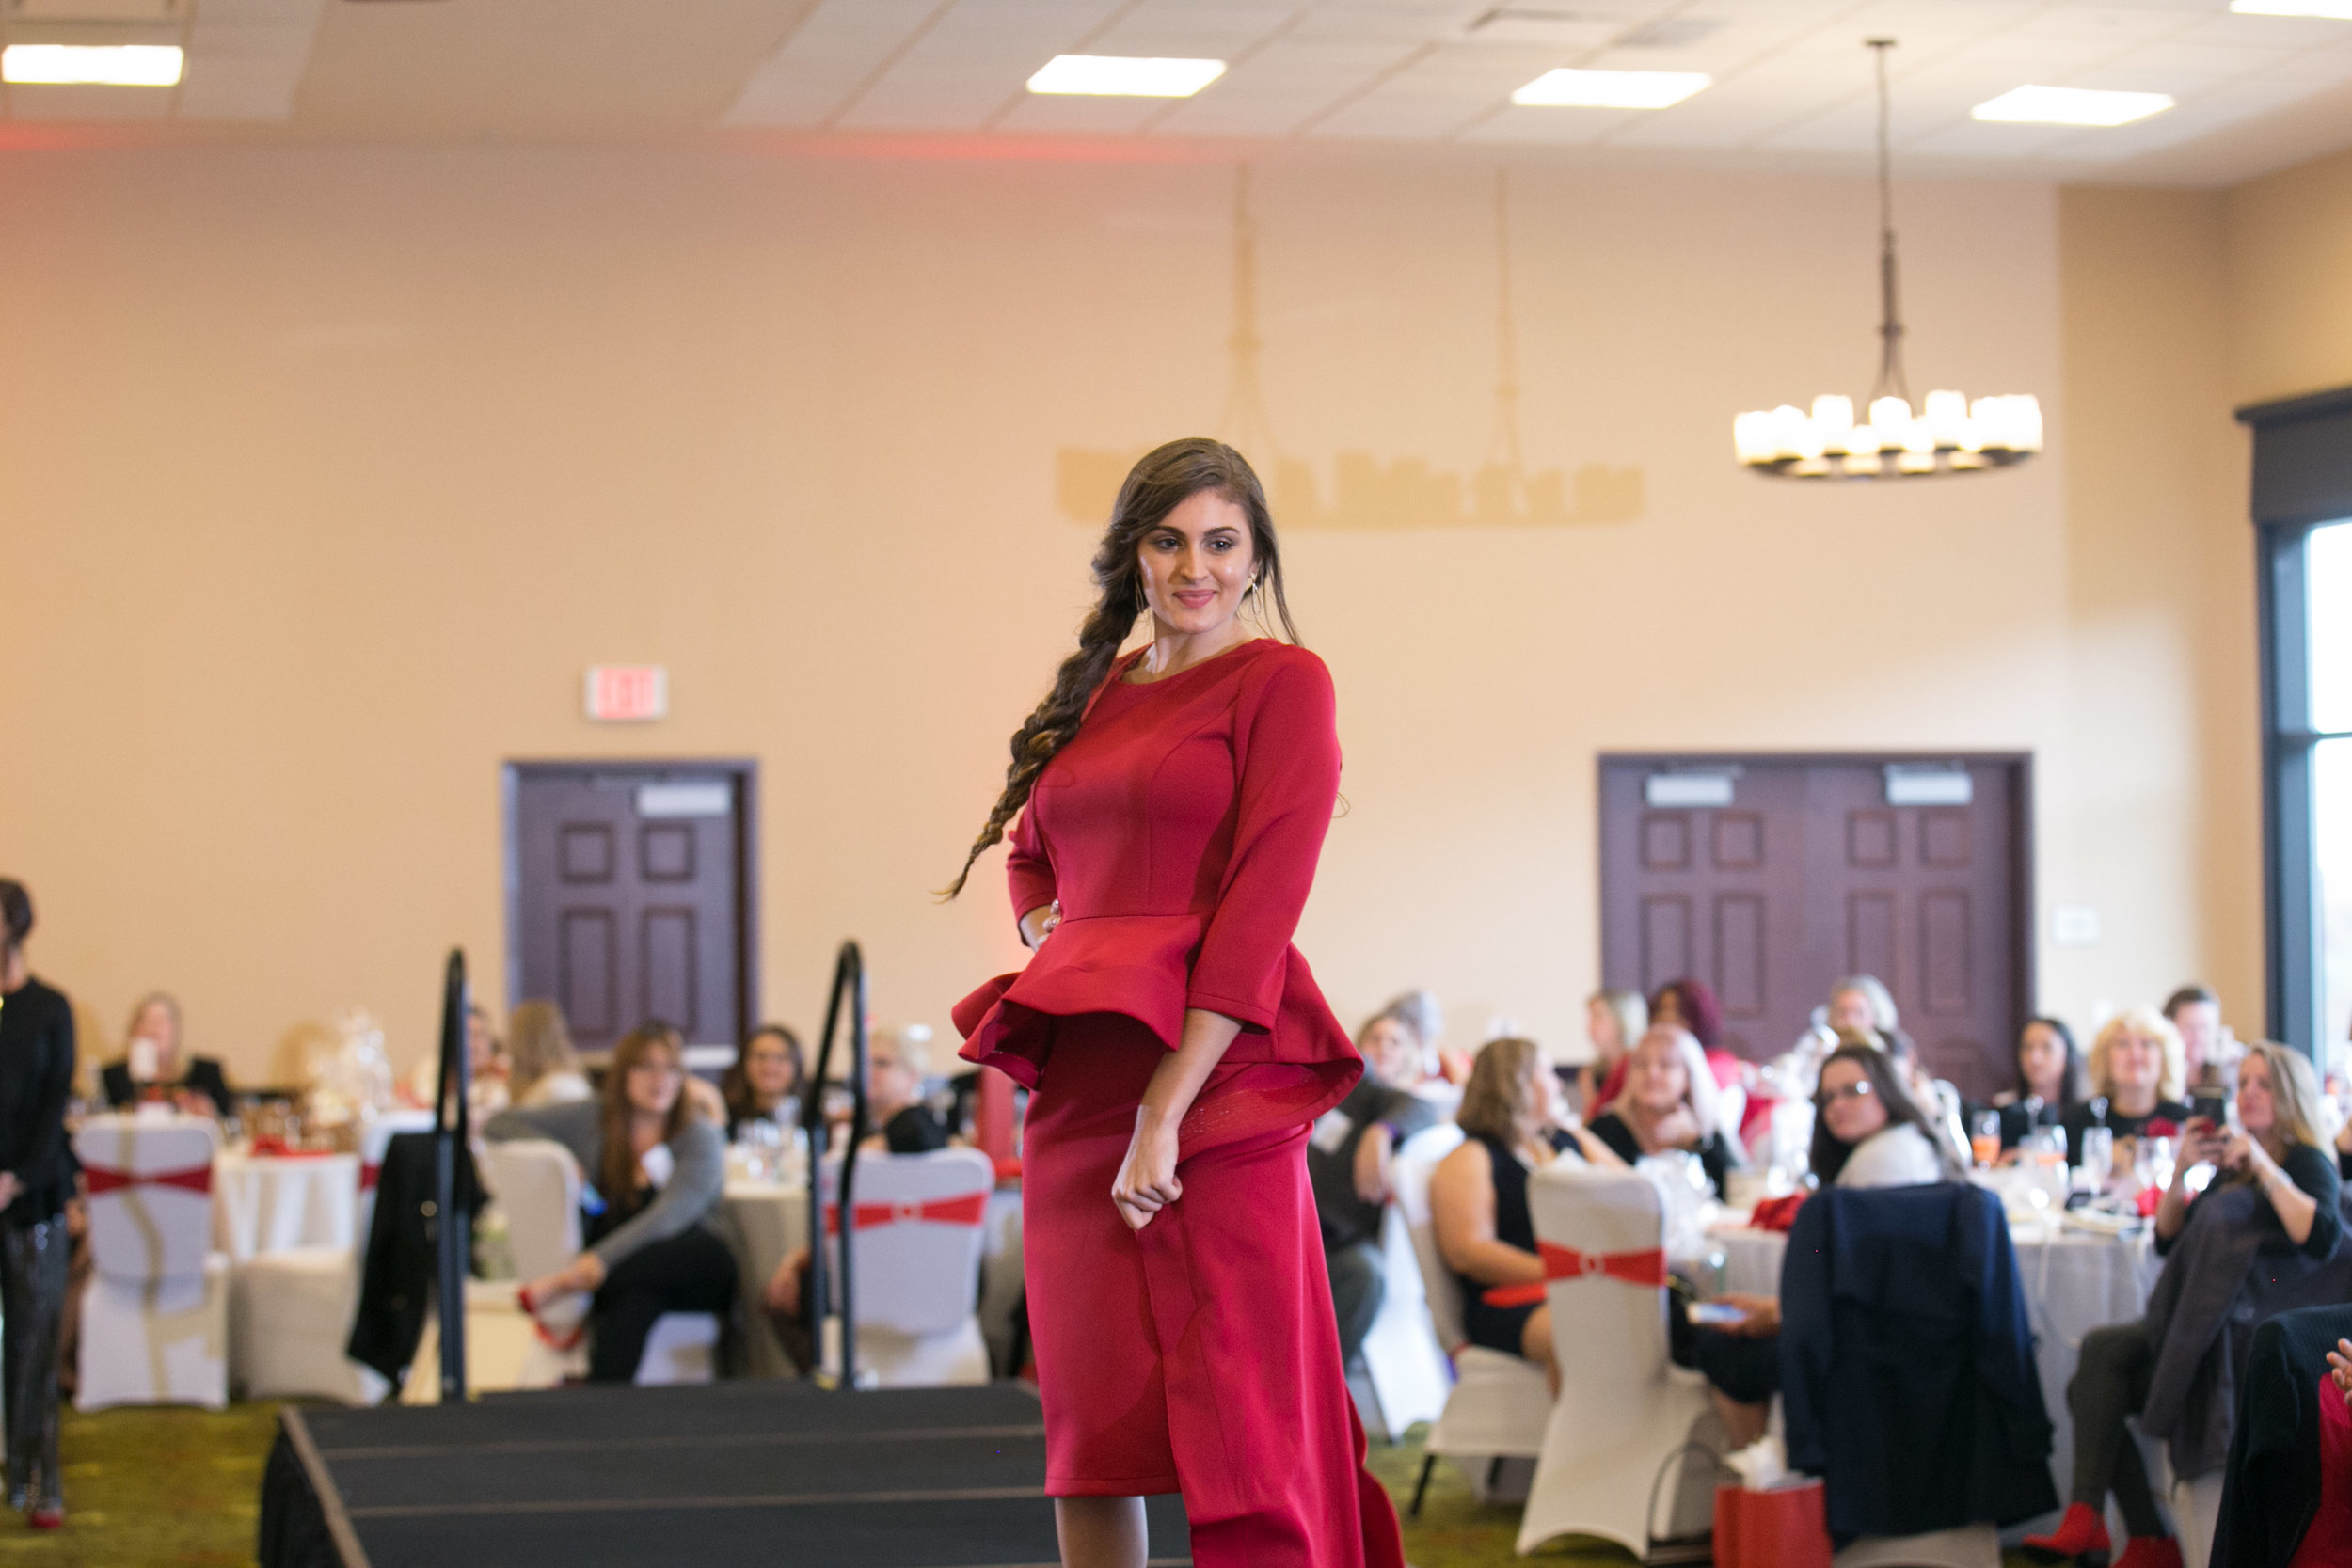 LightMaster-Studios-BWNice-Monroe-Chapter-Red-Shoes-Event-Camelback-lodge-2018-5713.jpg